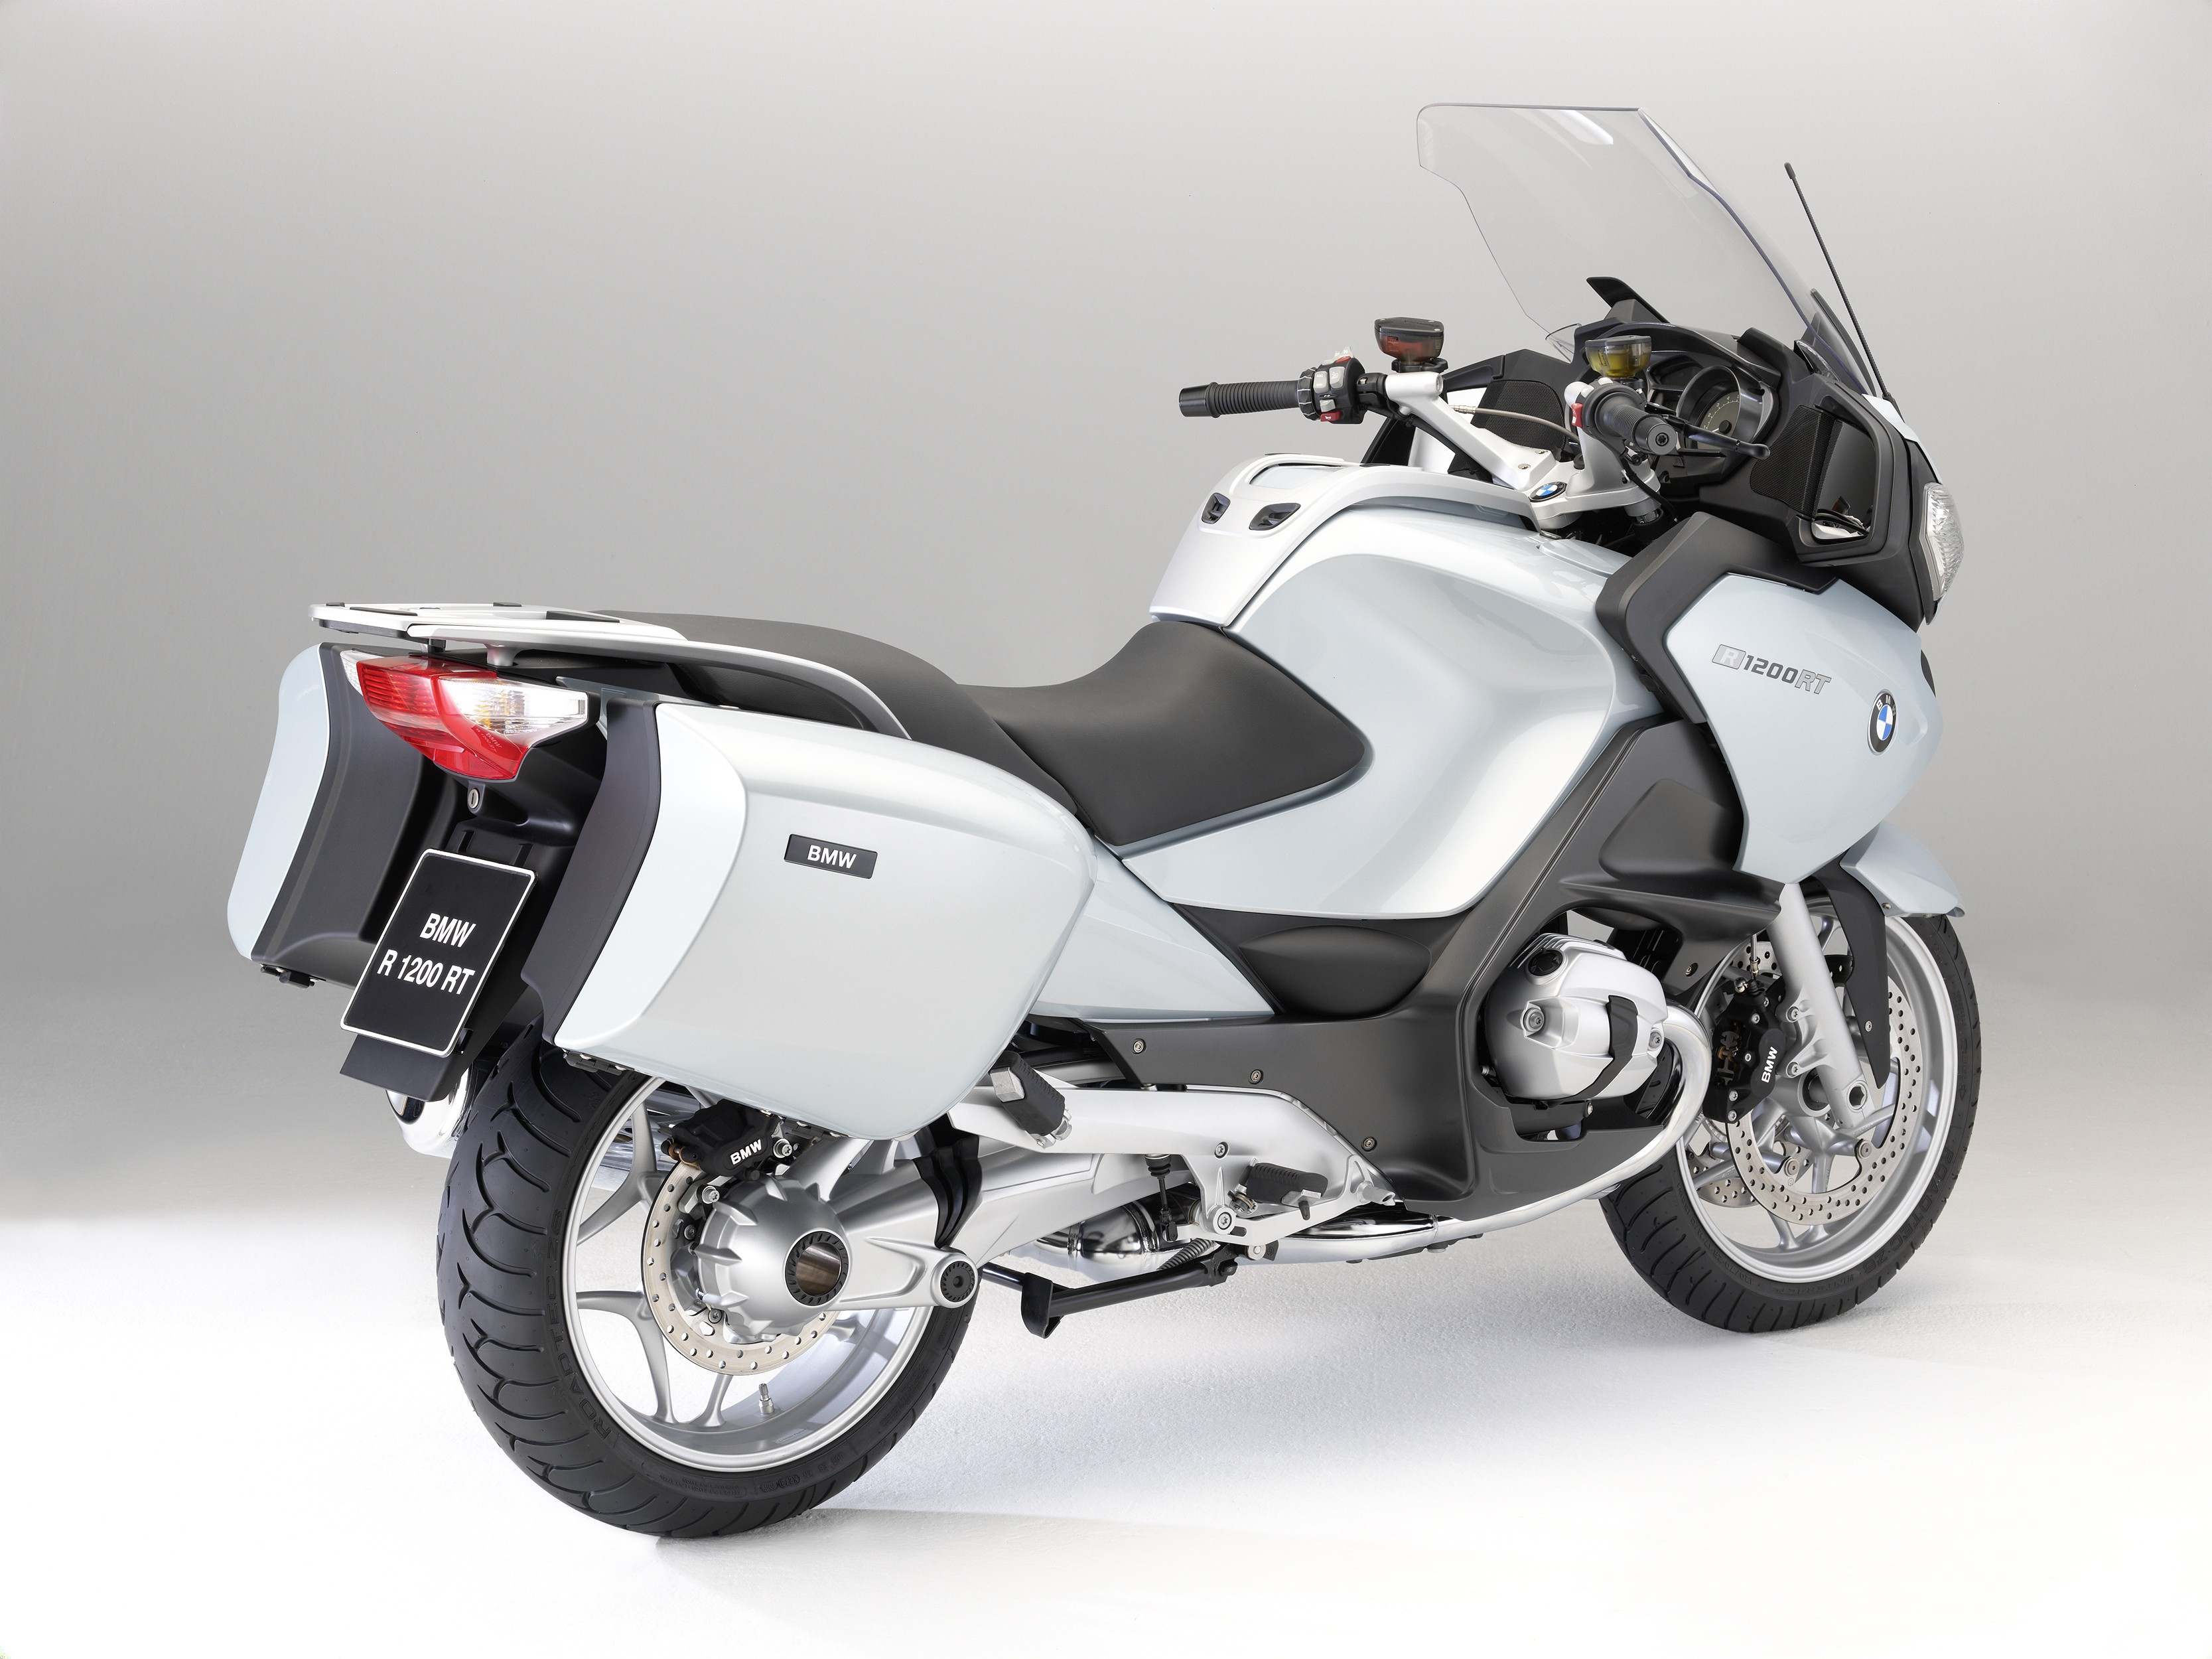 2010 bmw r 1200 rt review top speed. Black Bedroom Furniture Sets. Home Design Ideas